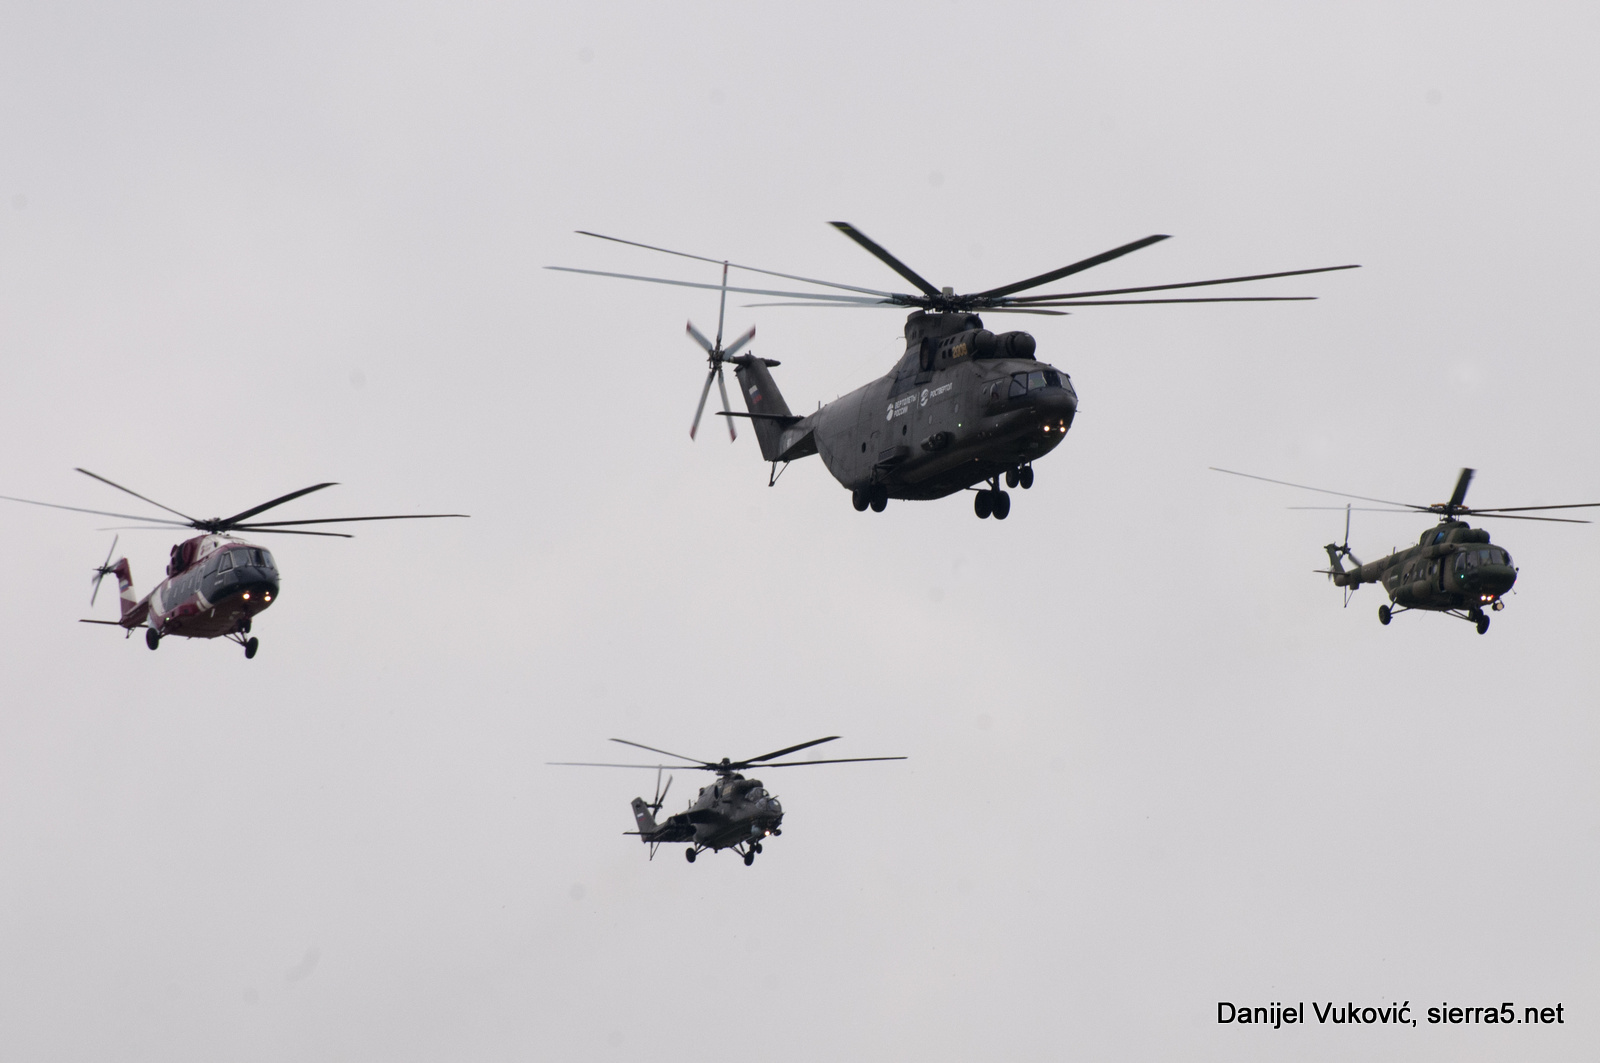 Fly-by of helicopters in flying program opening